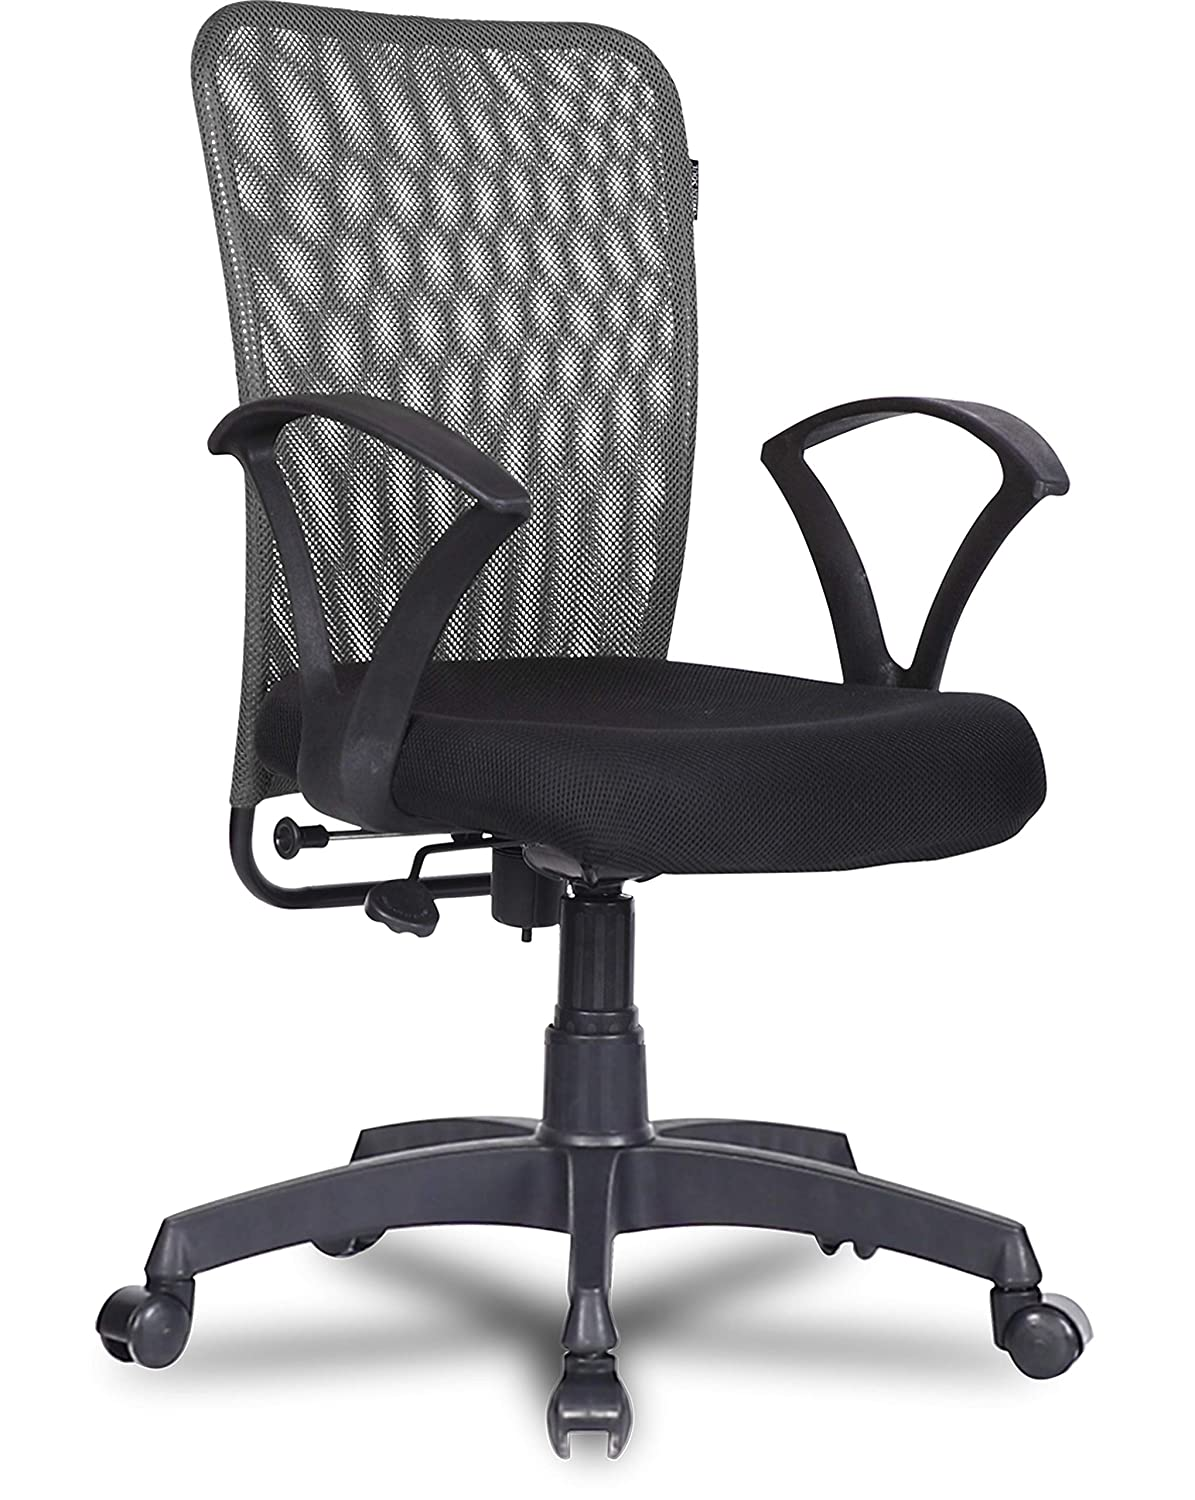 Green Soul Seoul Mid Back Office Chair review